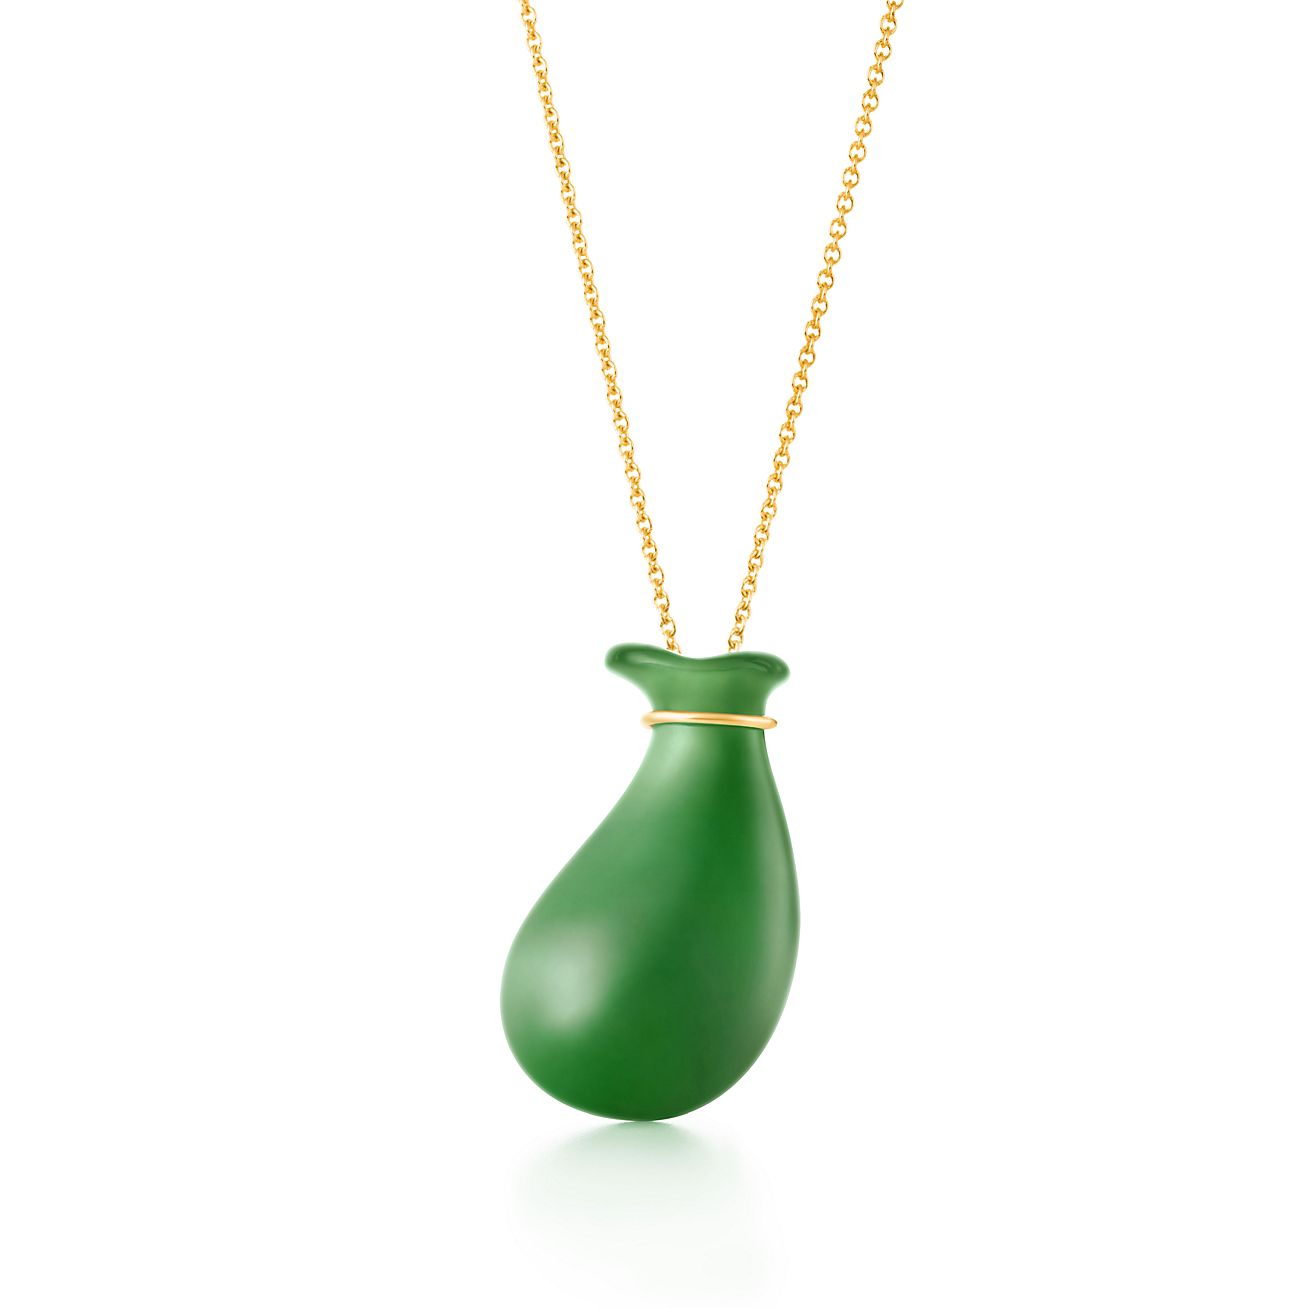 necklace wid ed fmt id co jade tiffany jewelry sphere fit constrain hei elsa necklaces in pendants green peretti p